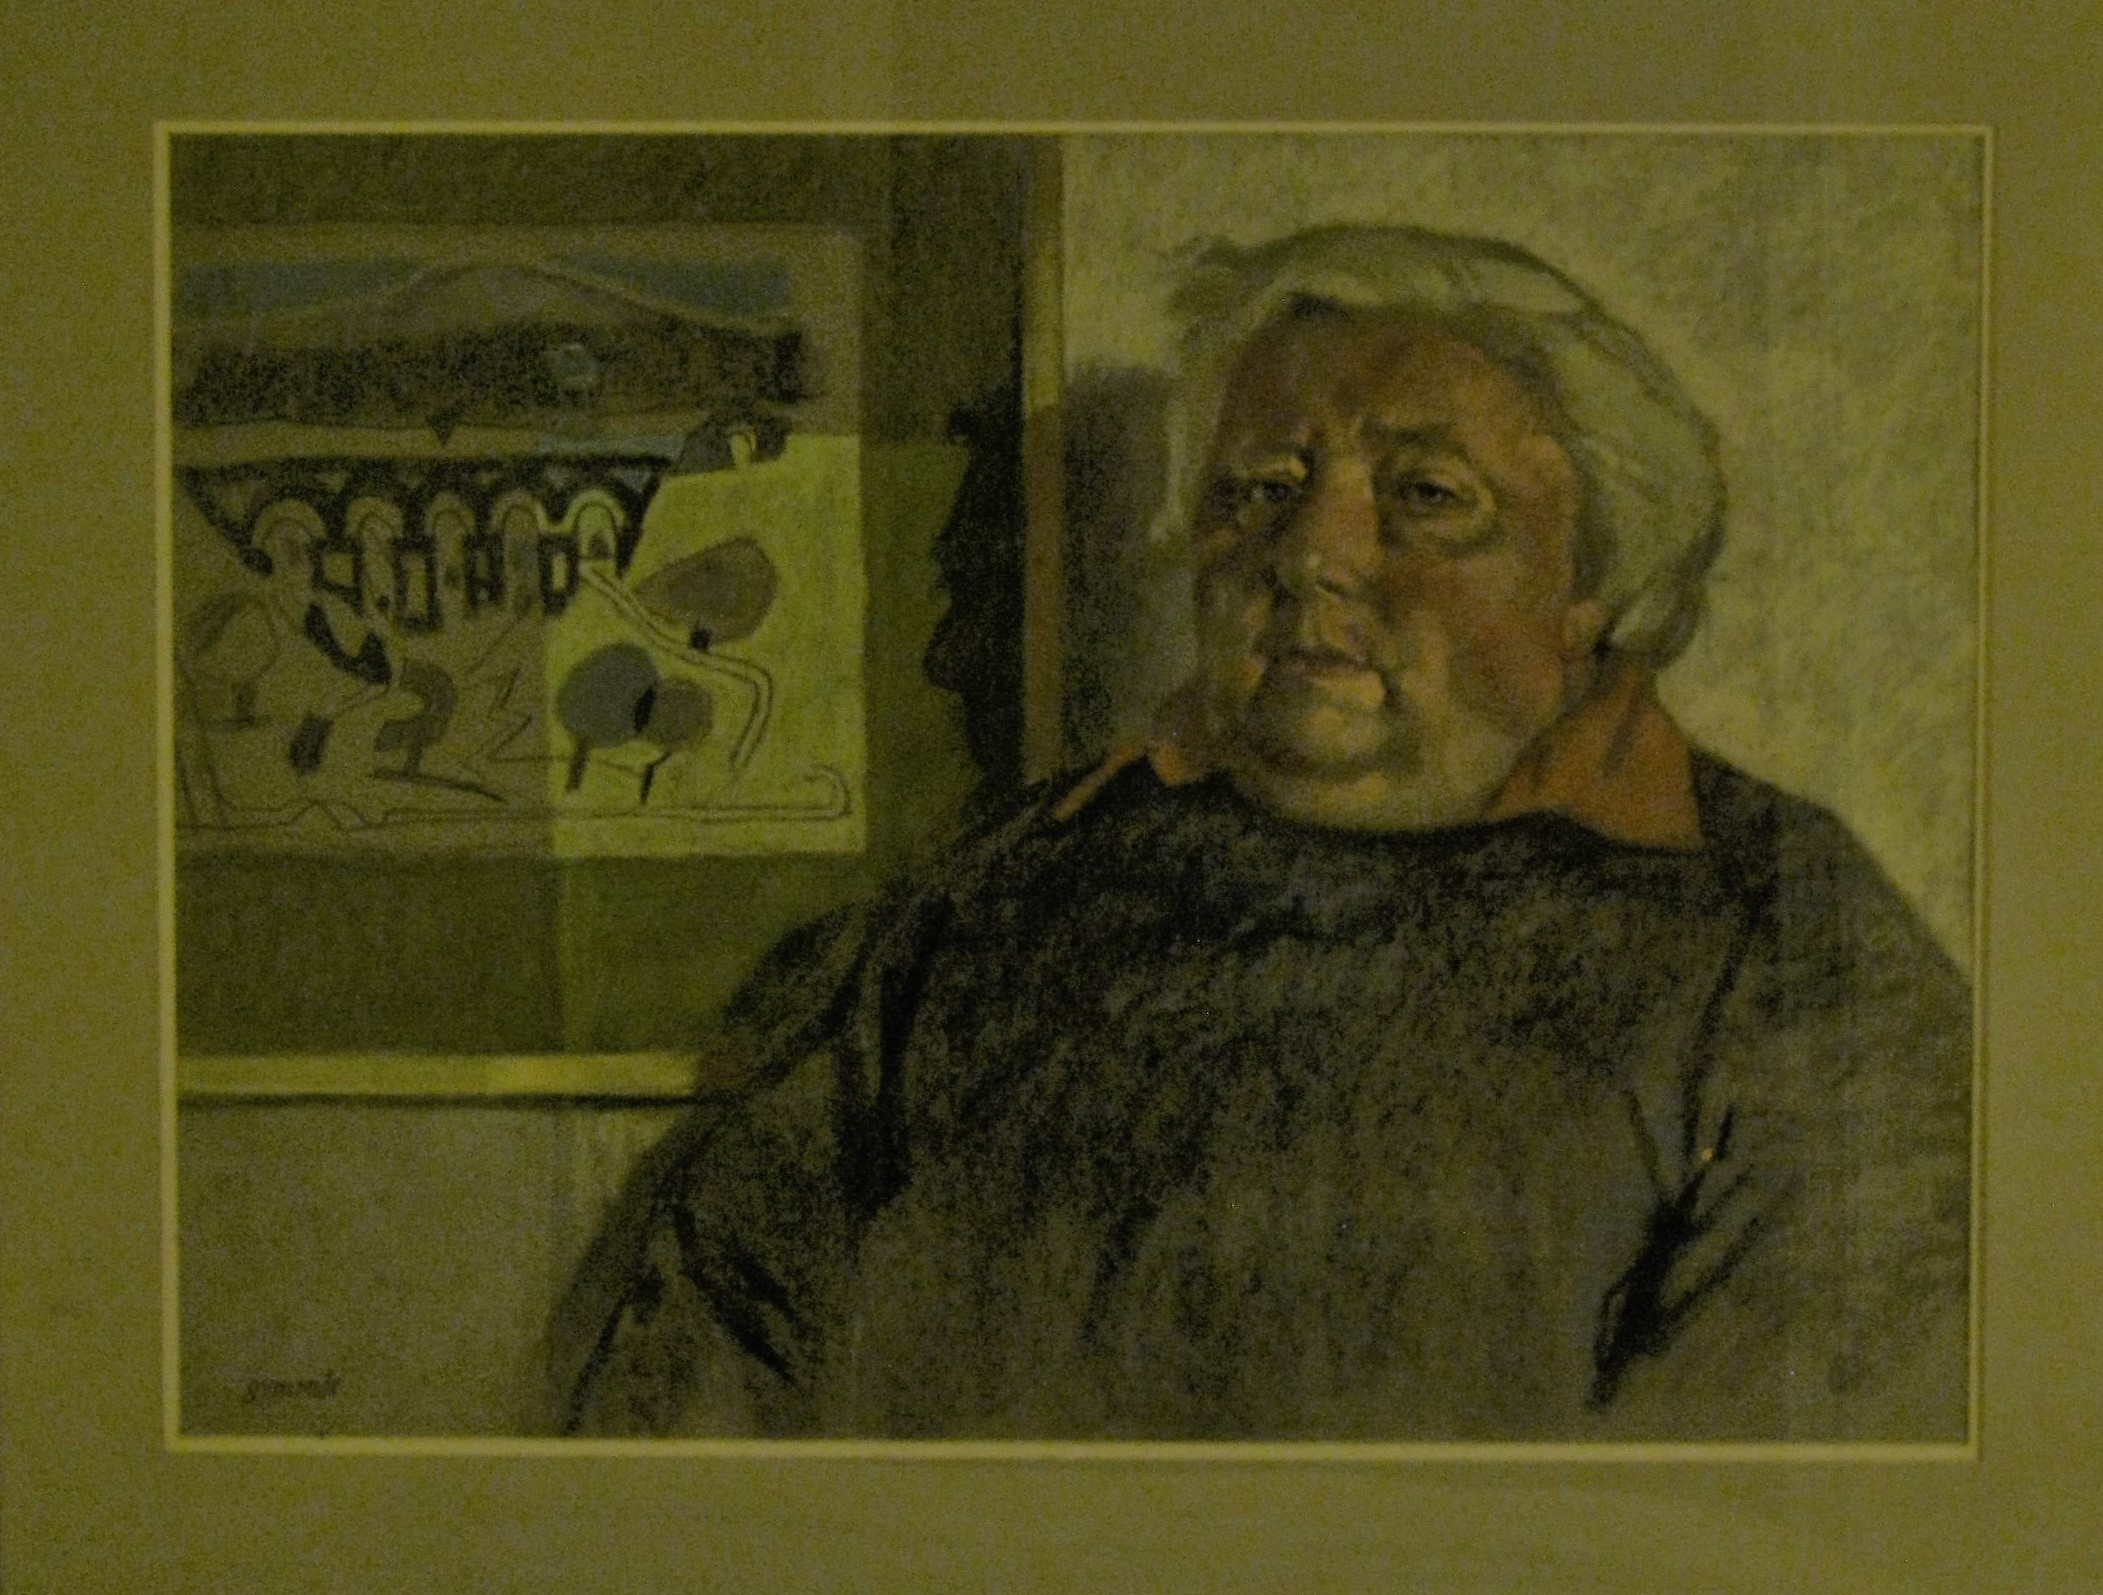 Pastel portrait of St Agnes artist Tony Giles, by Ken Symonds